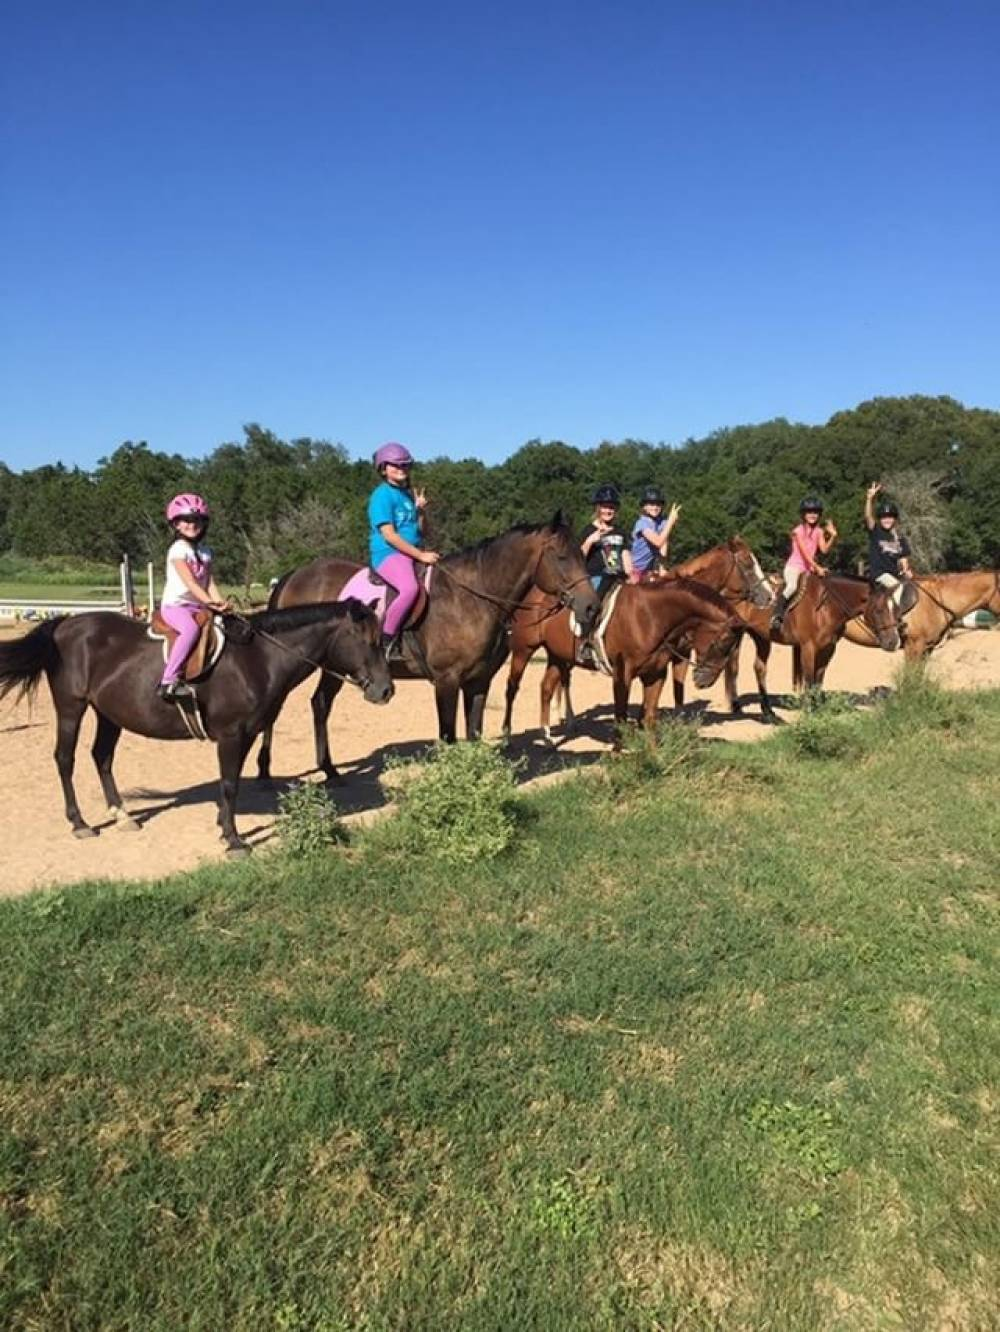 TOP TEXAS SUMMER CAMP: Hunters Chase Farms Inc. is a Top Summer Camp located in Wimberley Texas offering many fun and enriching camp programs. Hunters Chase Farms Inc. also offers CIT/LIT and/or Teen Leadership Opportunities, too.